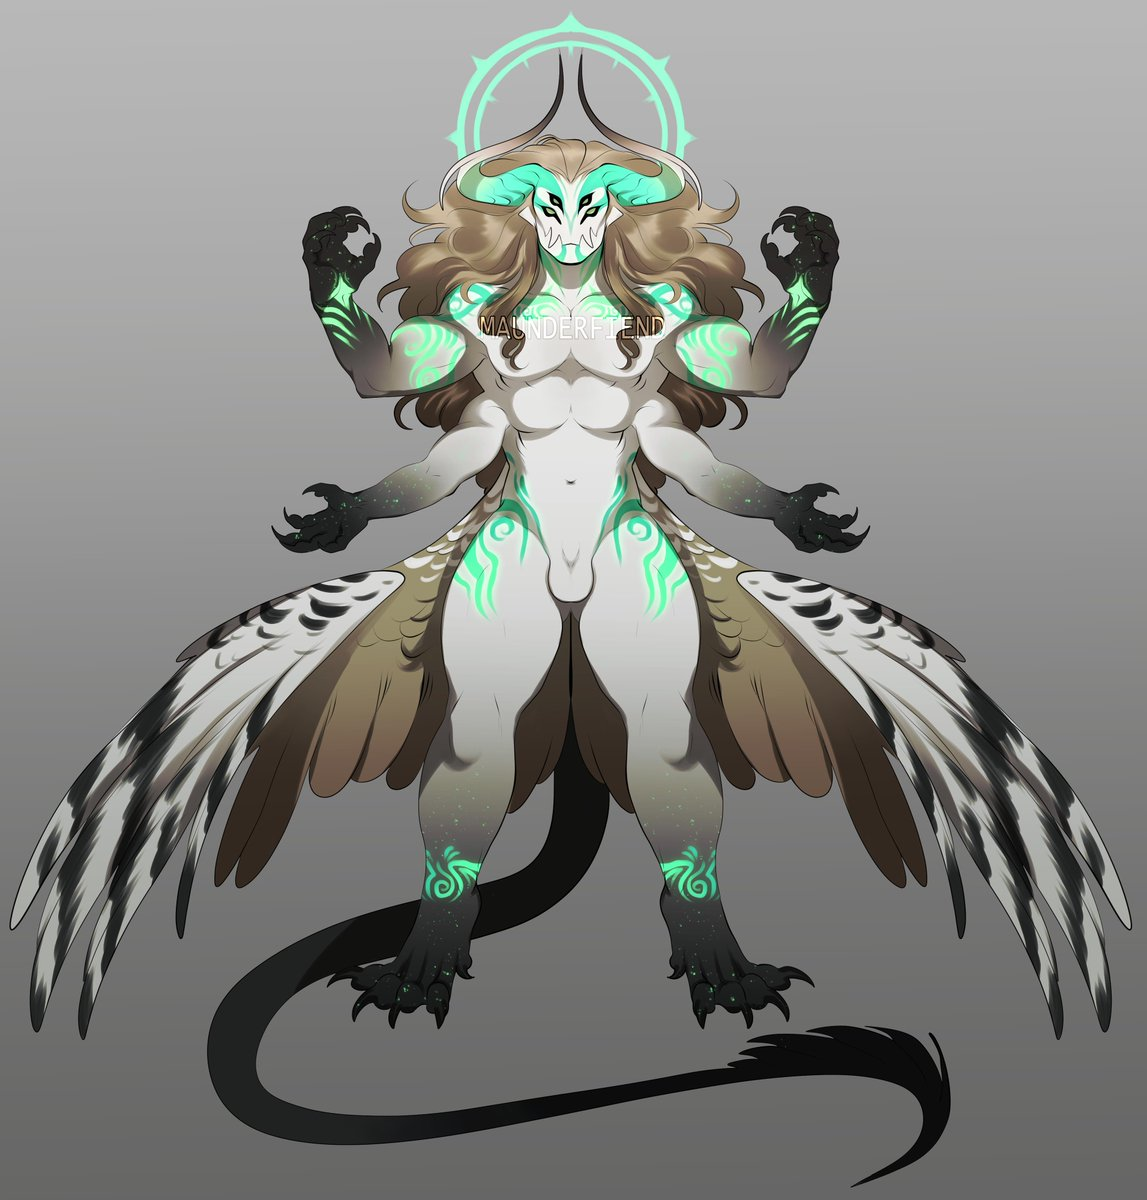 Guided design commission for @Mmmystikal <br>http://pic.twitter.com/9Xs2SsBPVp